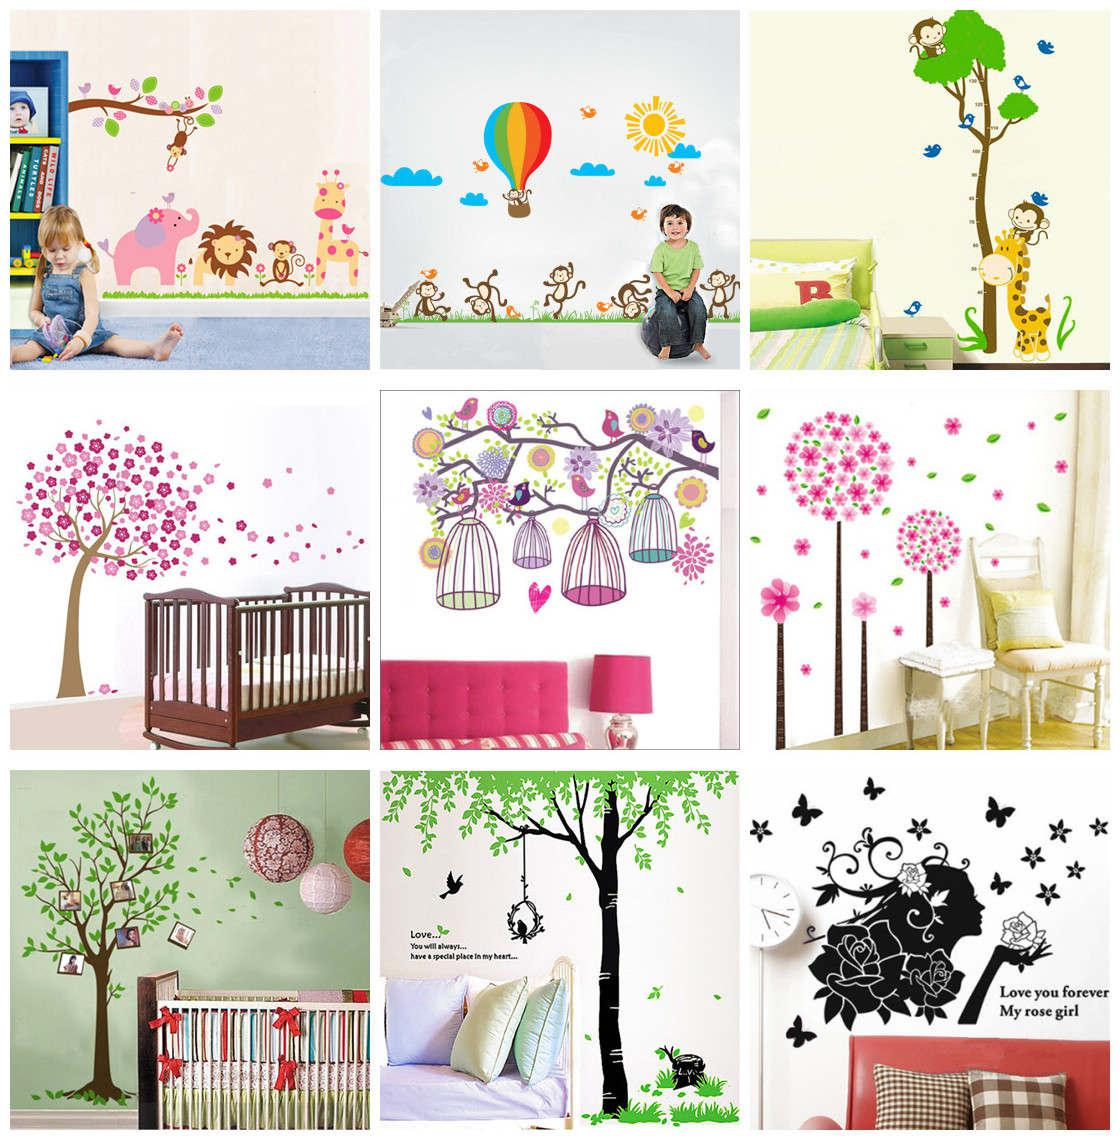 60x90cm removable wall stickers decals kids nursery wall decor 60x90cm removable wall stickers decals kids nursery wall decor mural art home decoration cheap wall murals and decals cheap wall sticker from jeanwill amipublicfo Image collections